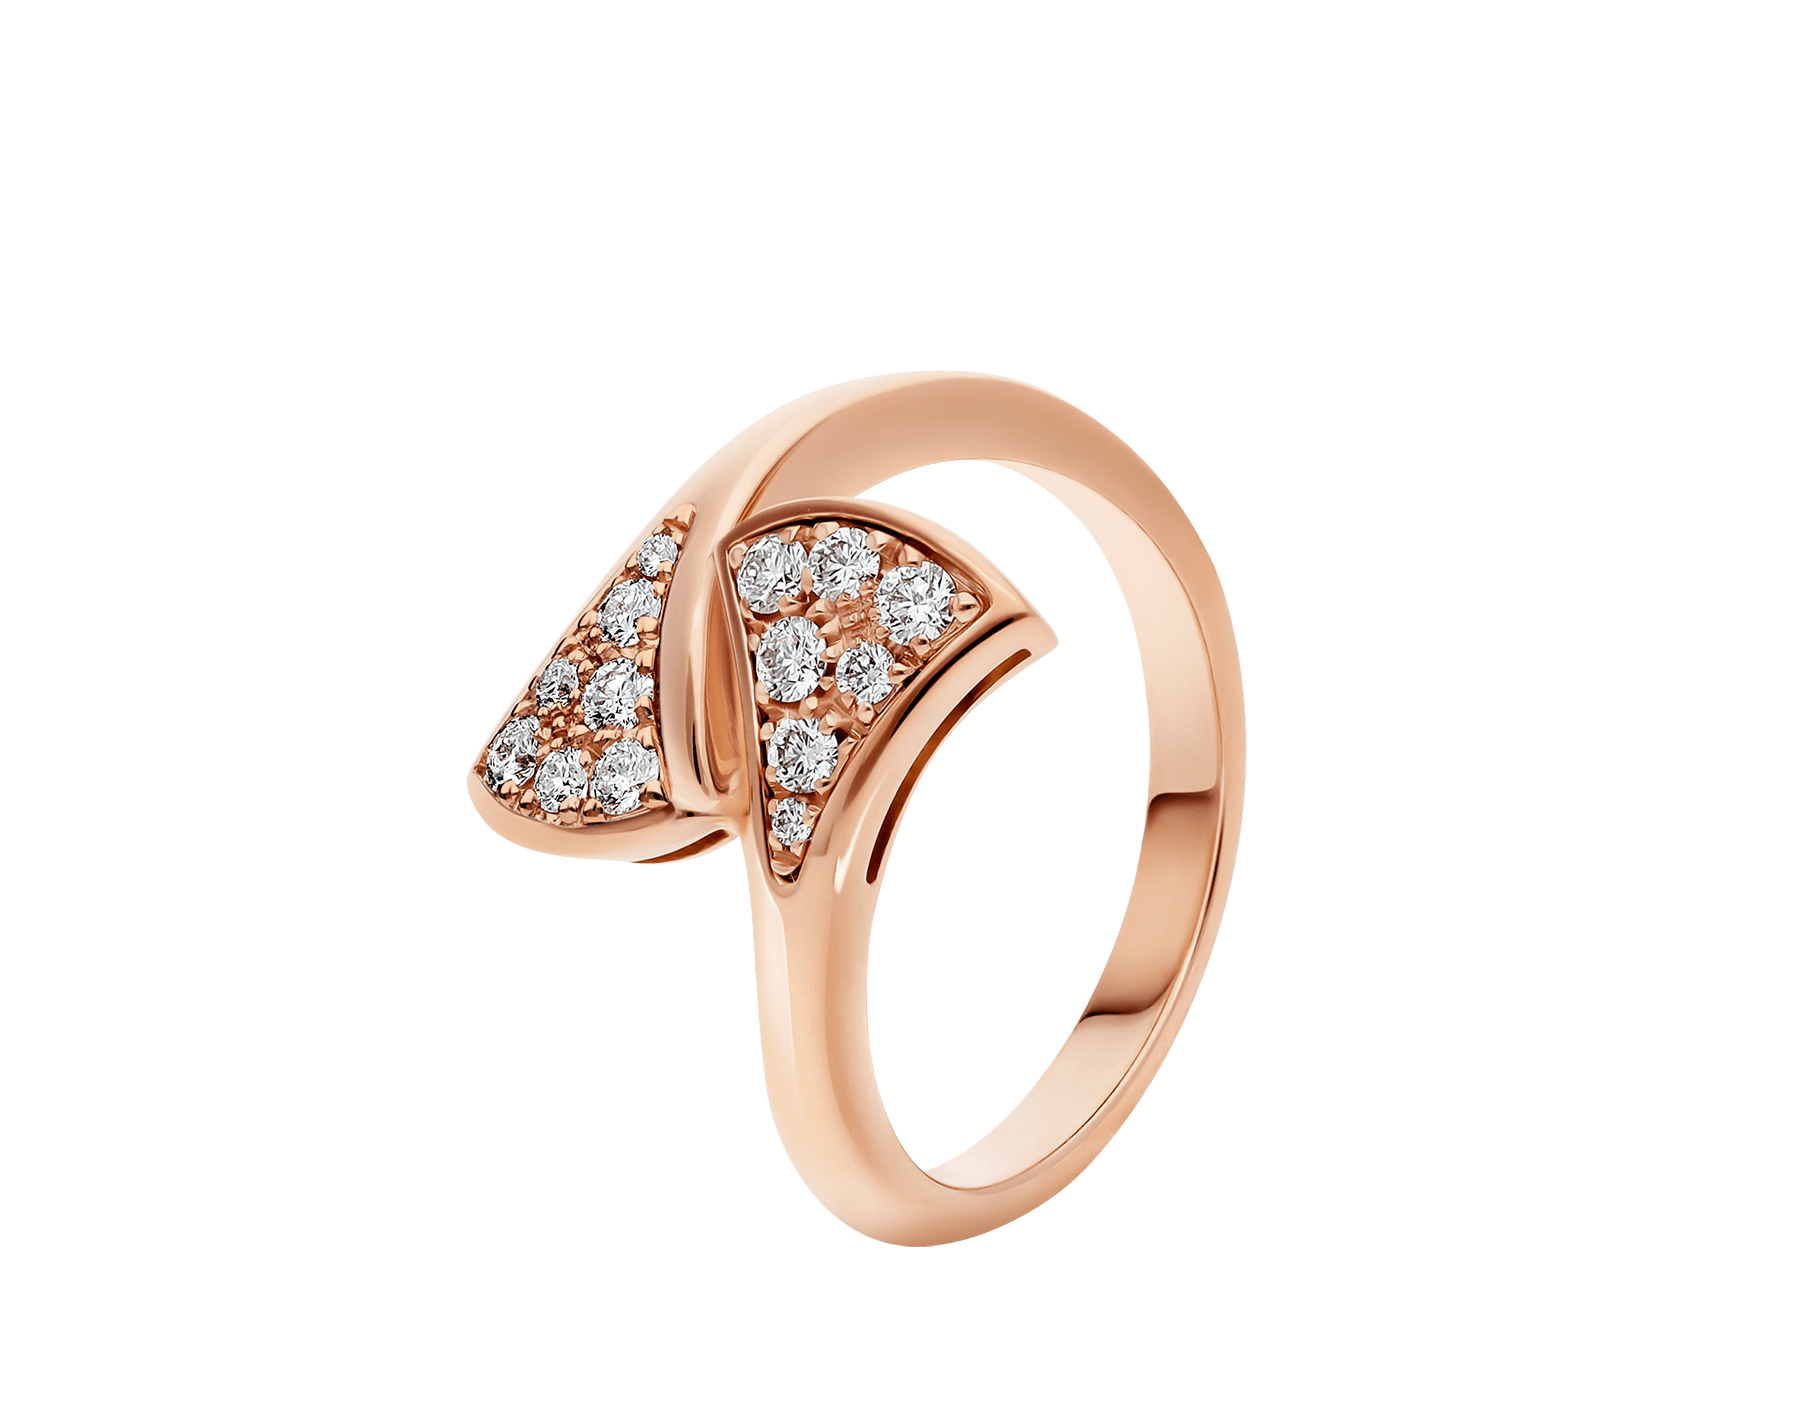 Anillo DIVAS' DREAM en oro rosa de 18 qt con pavé de diamantes (0,20 ct). AN858647 image 1